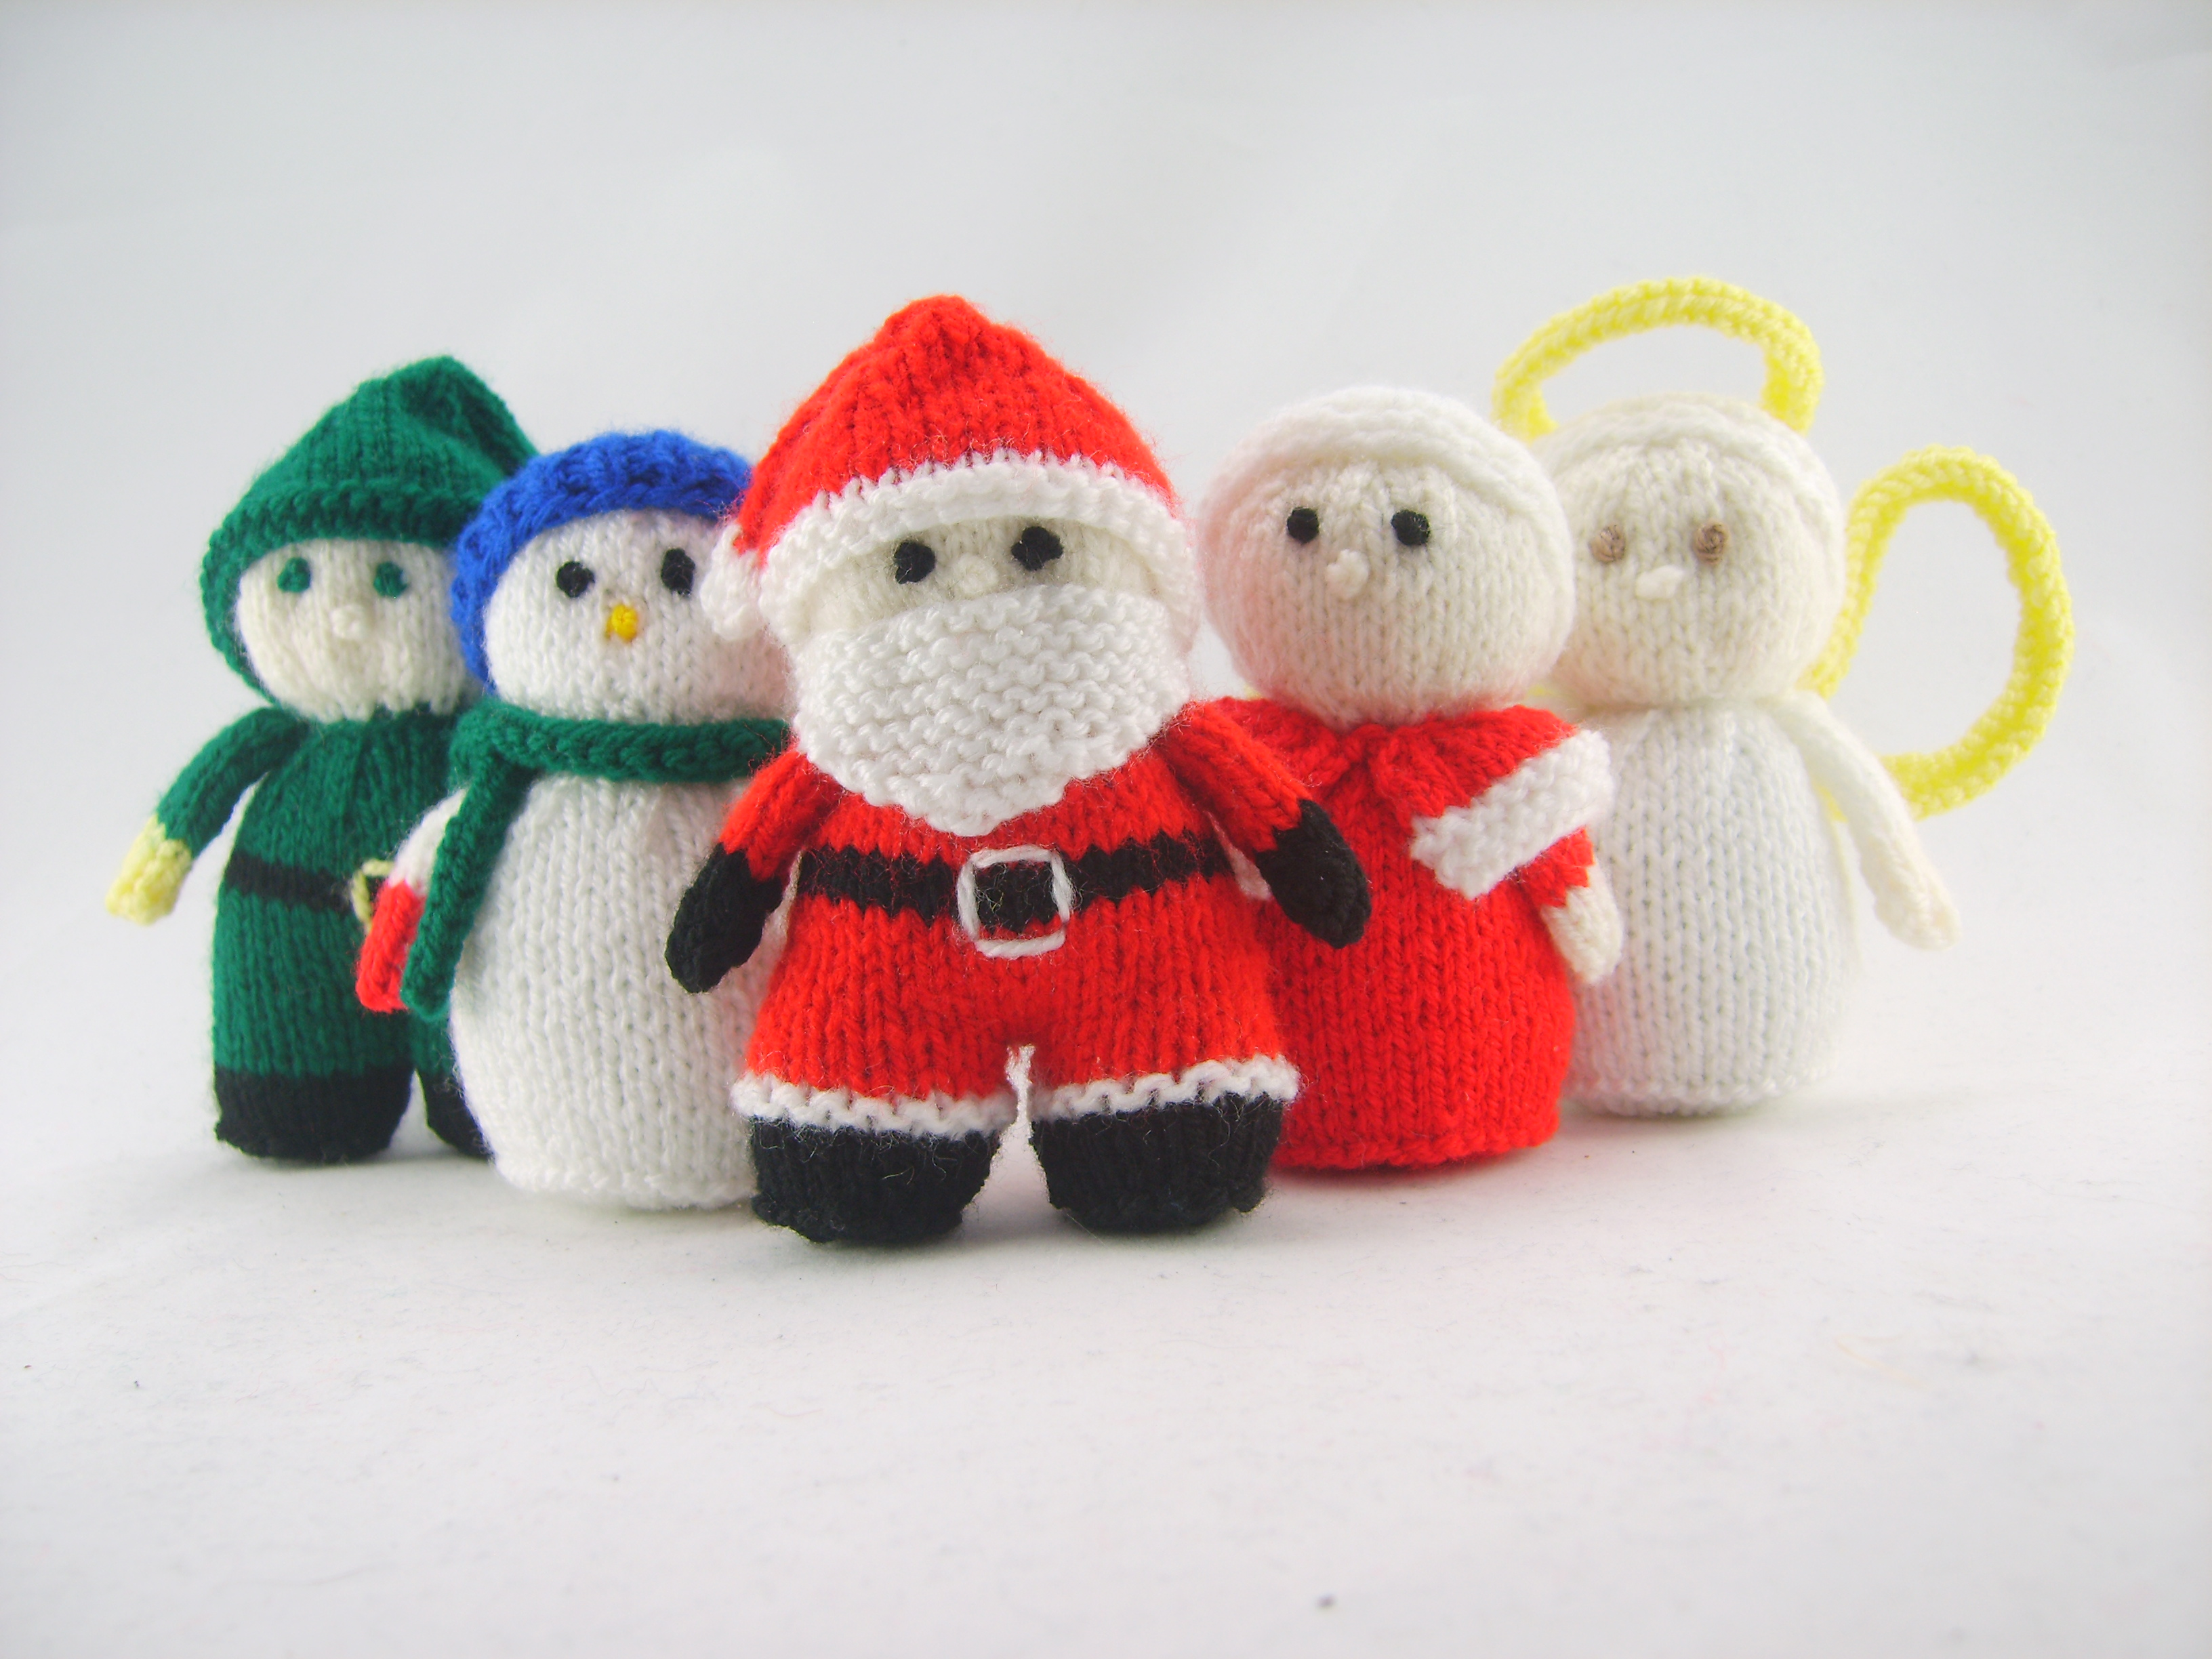 Mini Knitted Christmas Characters Knitting Pattern Knitting by Post